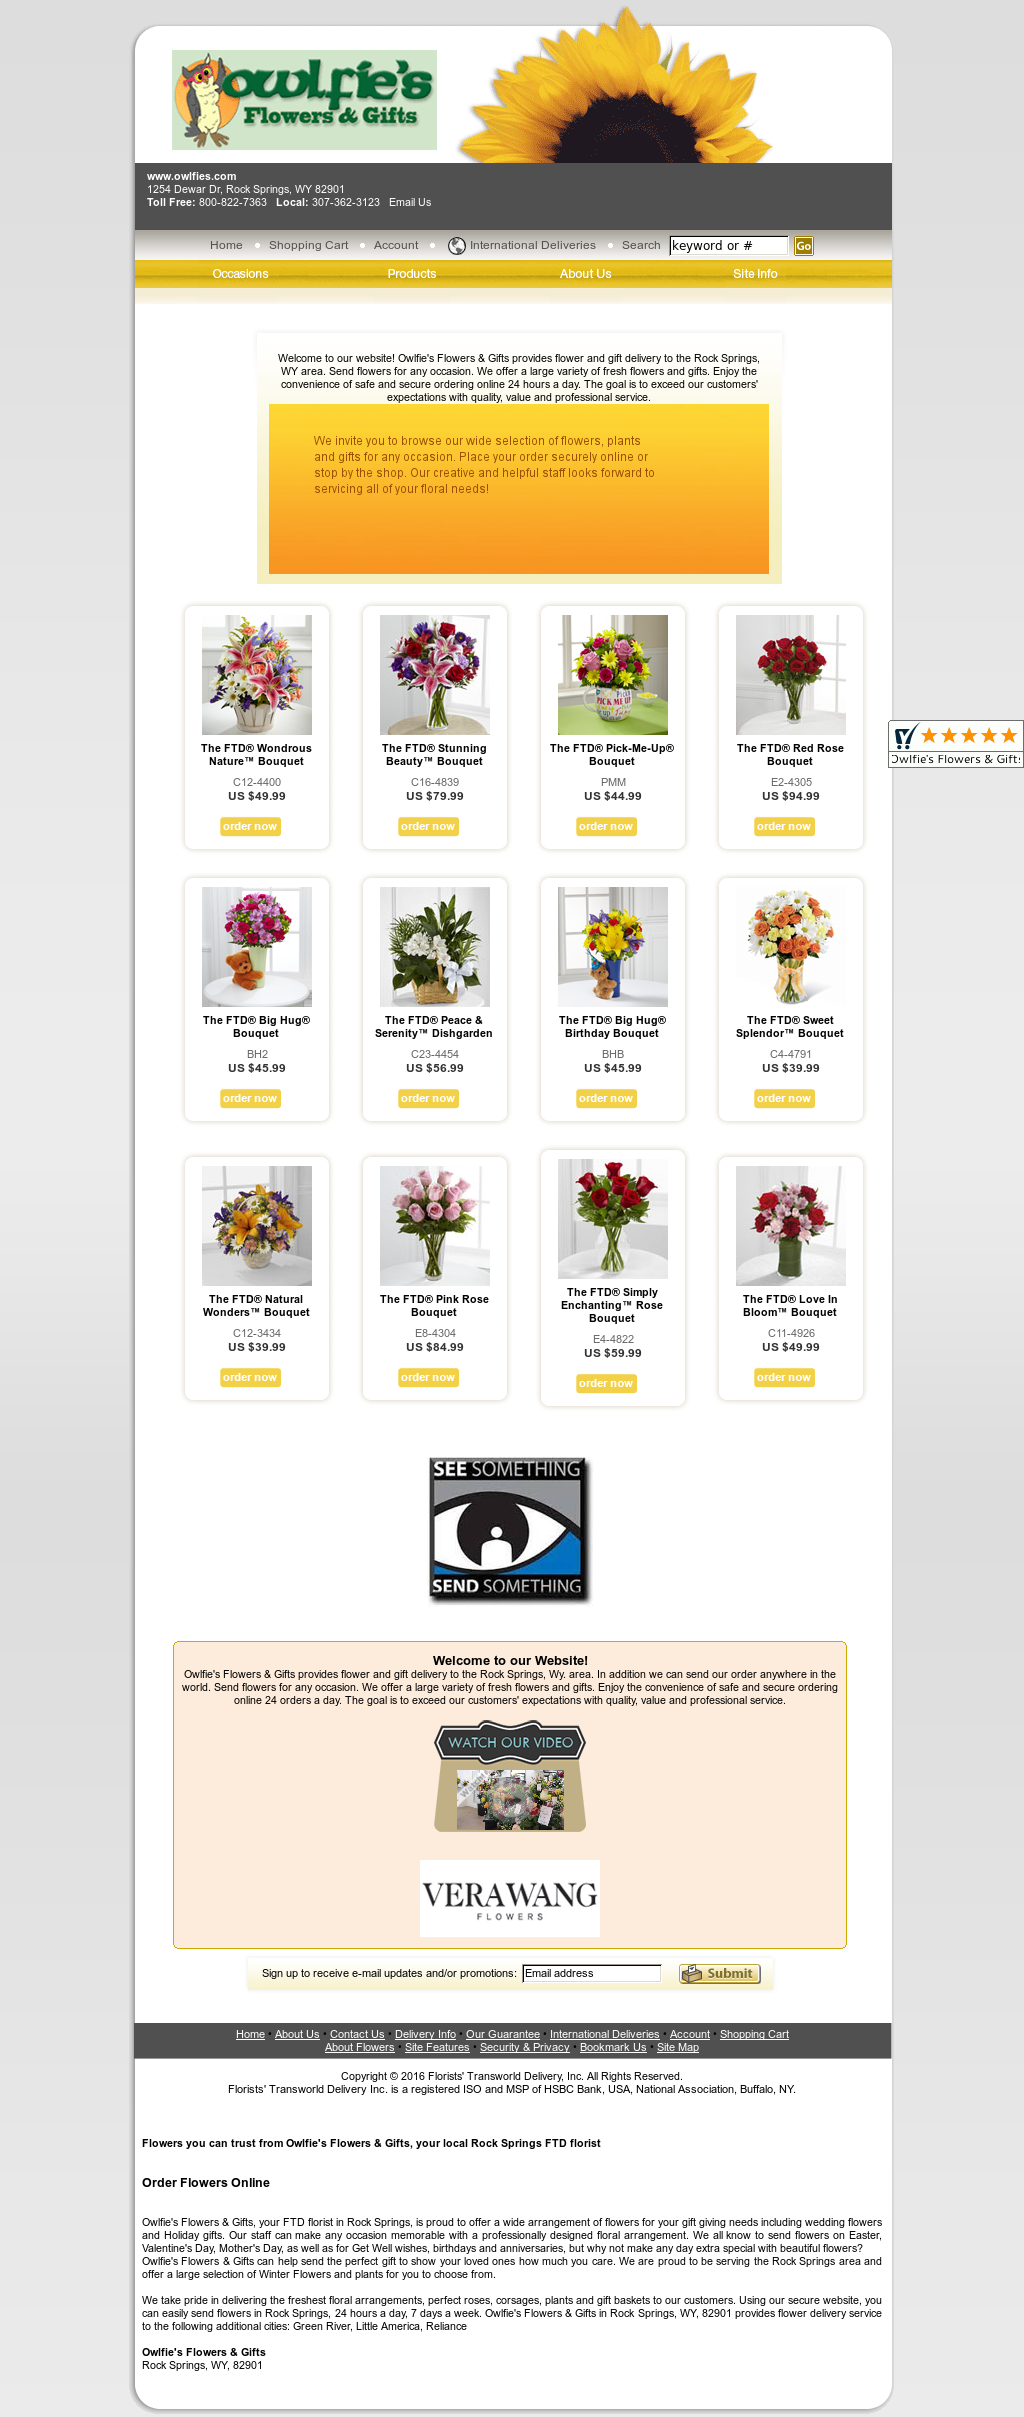 Owlfies flowers and gifts competitors revenue and employees owler owlfies flowers and gifts competitors revenue and employees owler company profile mightylinksfo